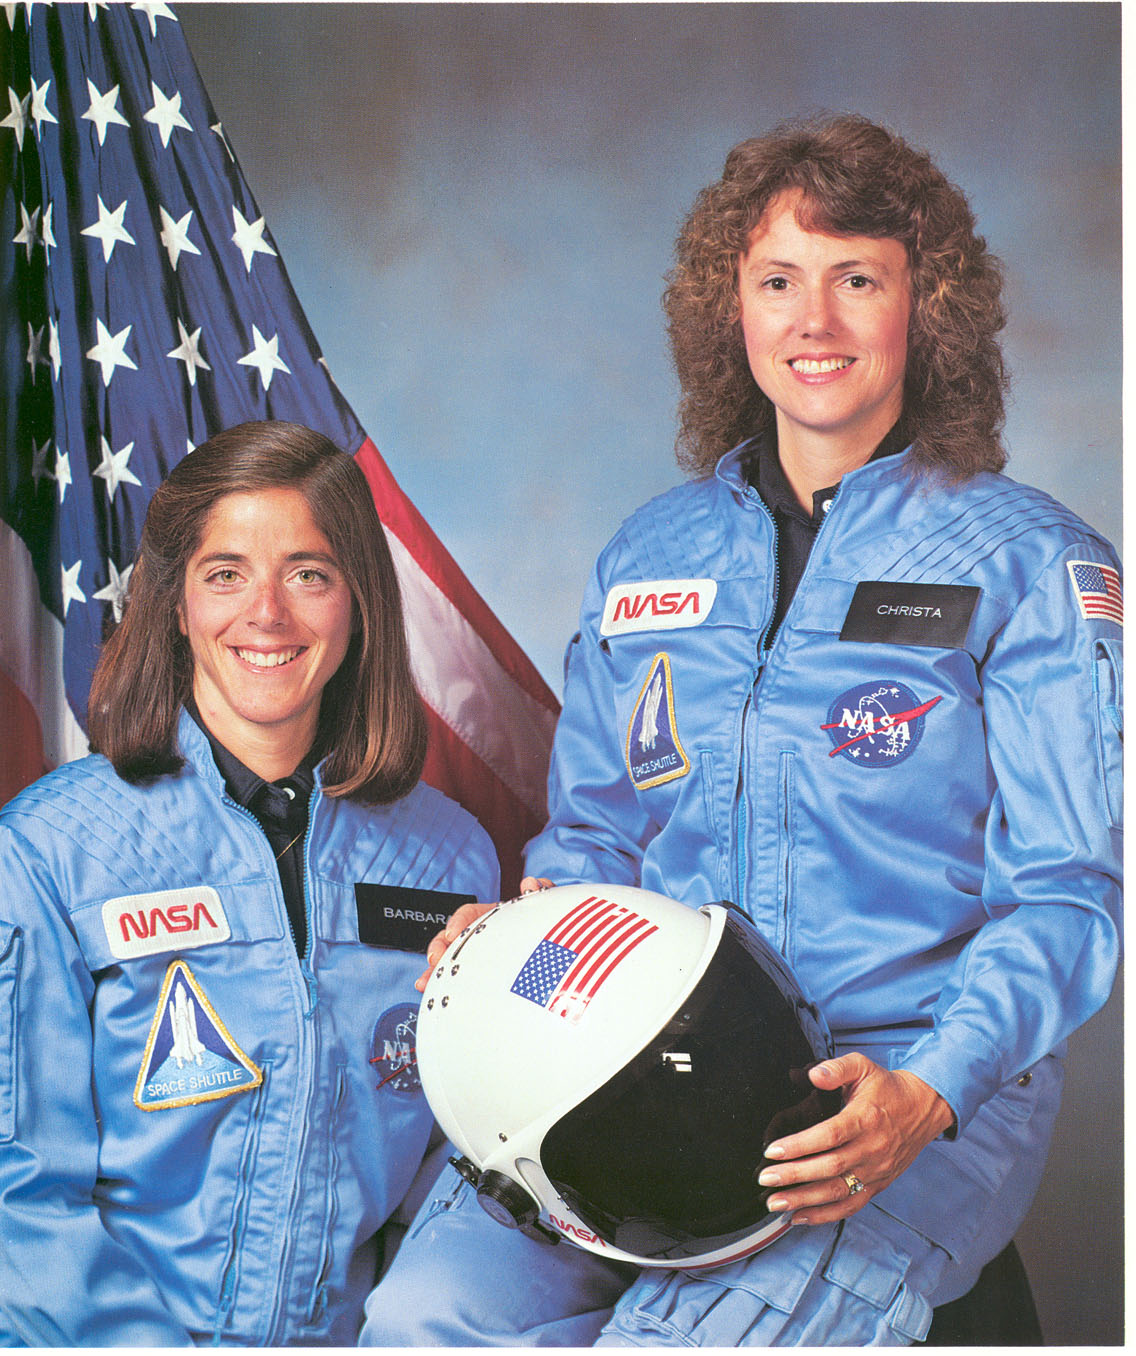 Christa McAuliffe and Barbara Morgan